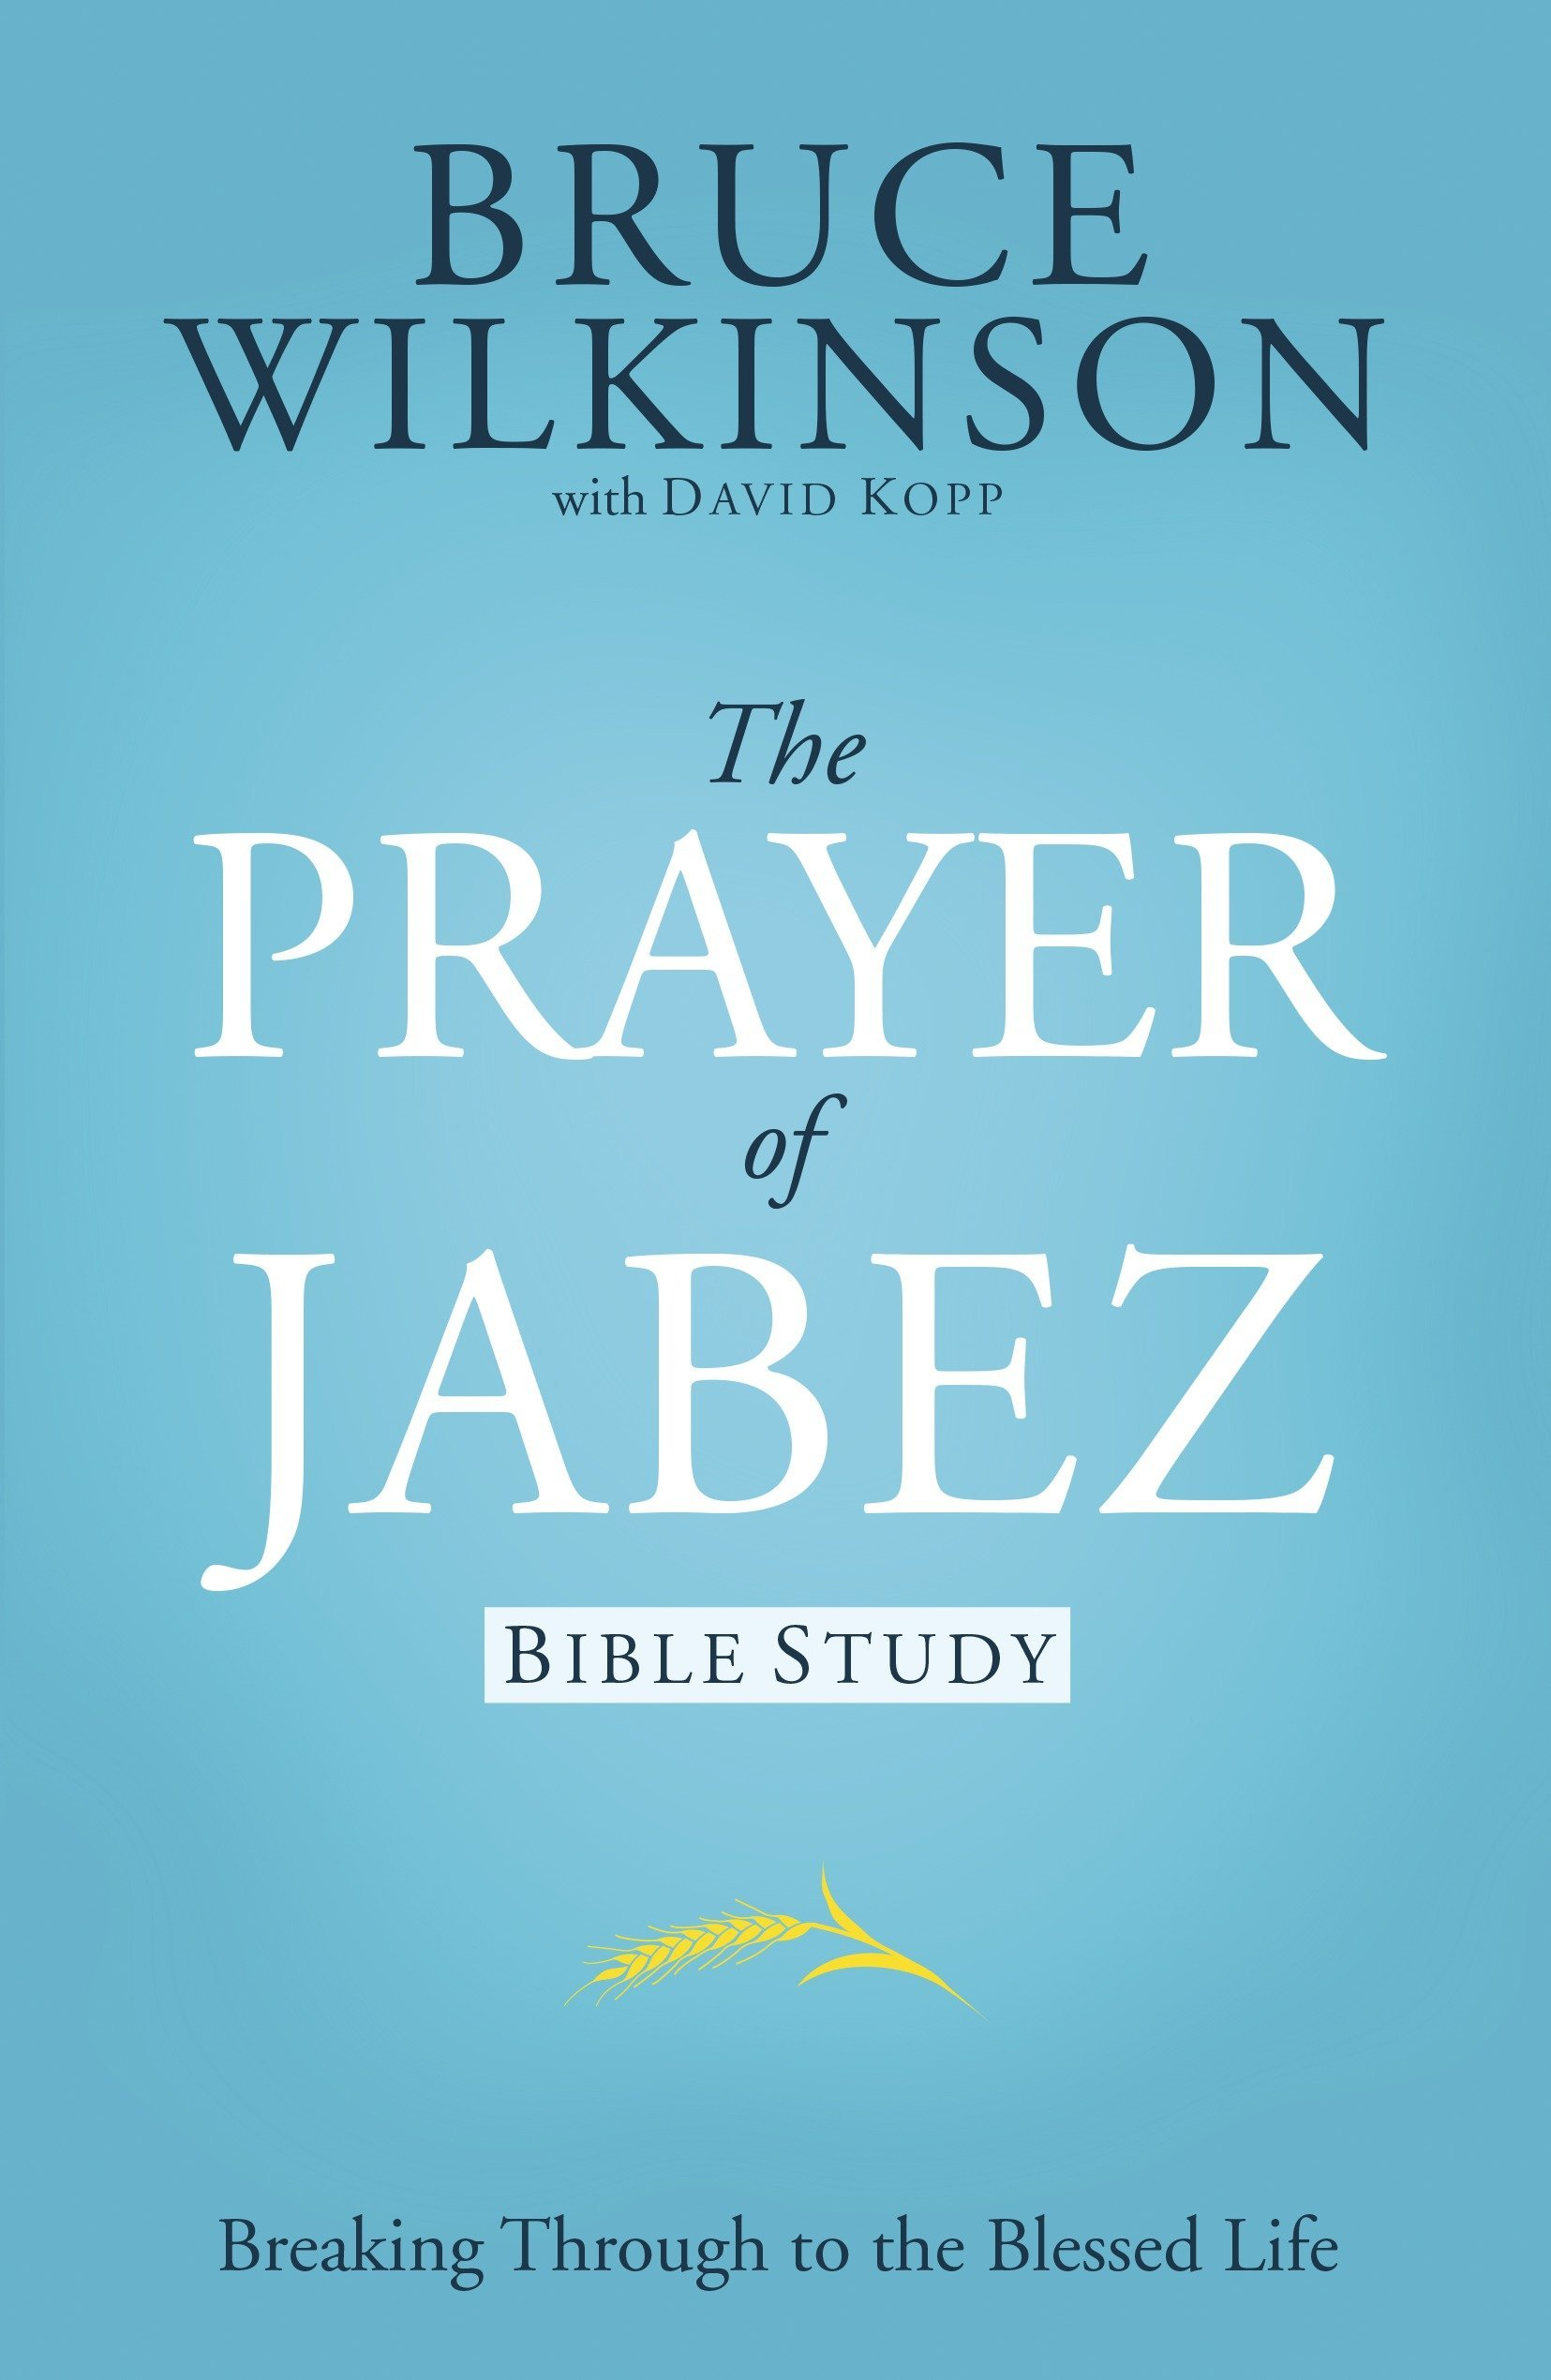 Prayer of Jabez Study Guide: For Personal or Group Use (Breakthrough):  Amazon.co.uk: Bruce Wilkinson: 9781576739792: Books